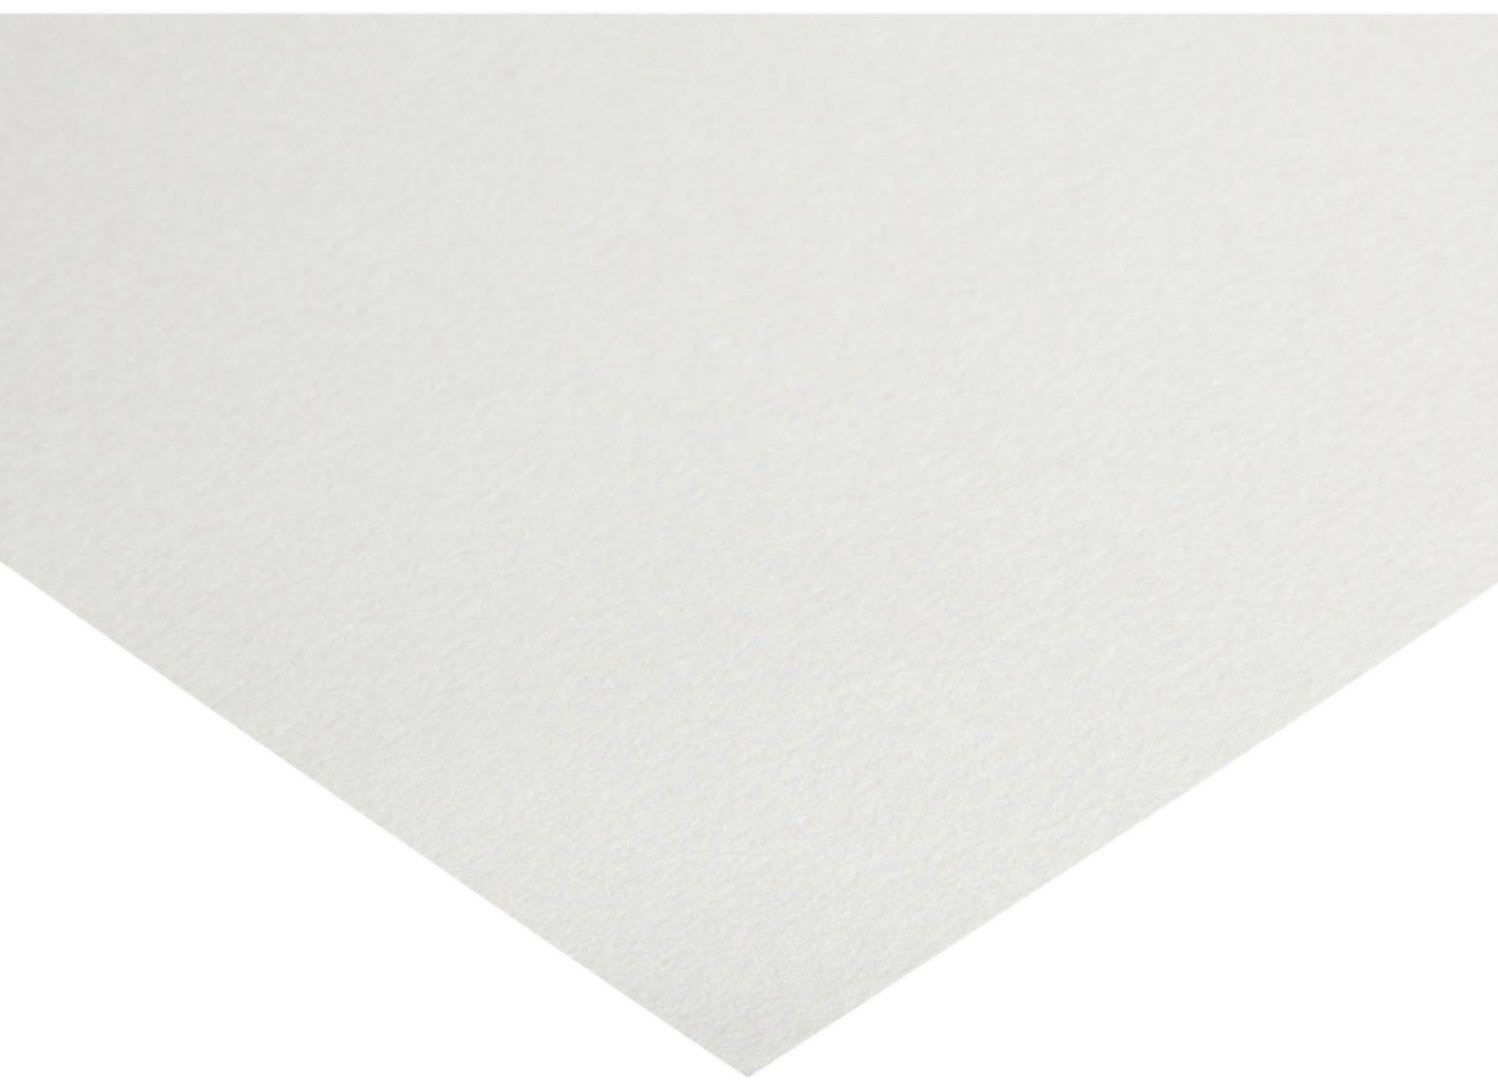 GE Whatman 3030-392 Cellulose Chromatography Paper Sheet, Grade 3MM Chr, 29psi Dry Burst, 130mm/30min Flow Rate, 45cm Length x 35cm Width (Pack of 100)